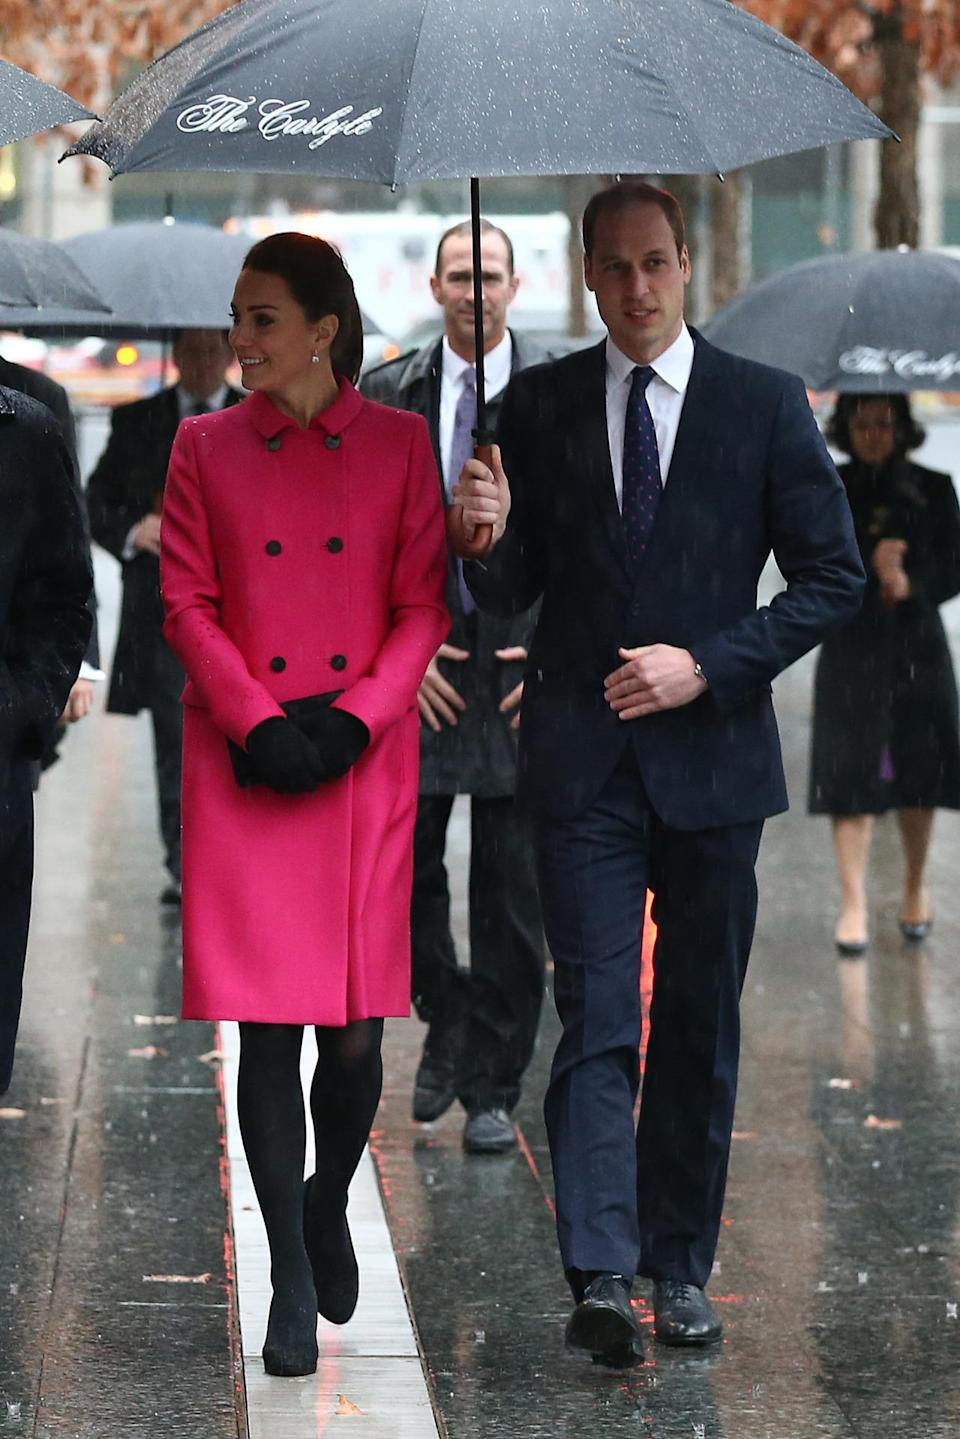 <p>The Duchess donned a cerise Mulberry coat for a visit to the 9/11 memorial in New York. A black clutch - also by Mulberry - and black pumps finished the look. </p><p><i>[Photo: PA]</i></p>